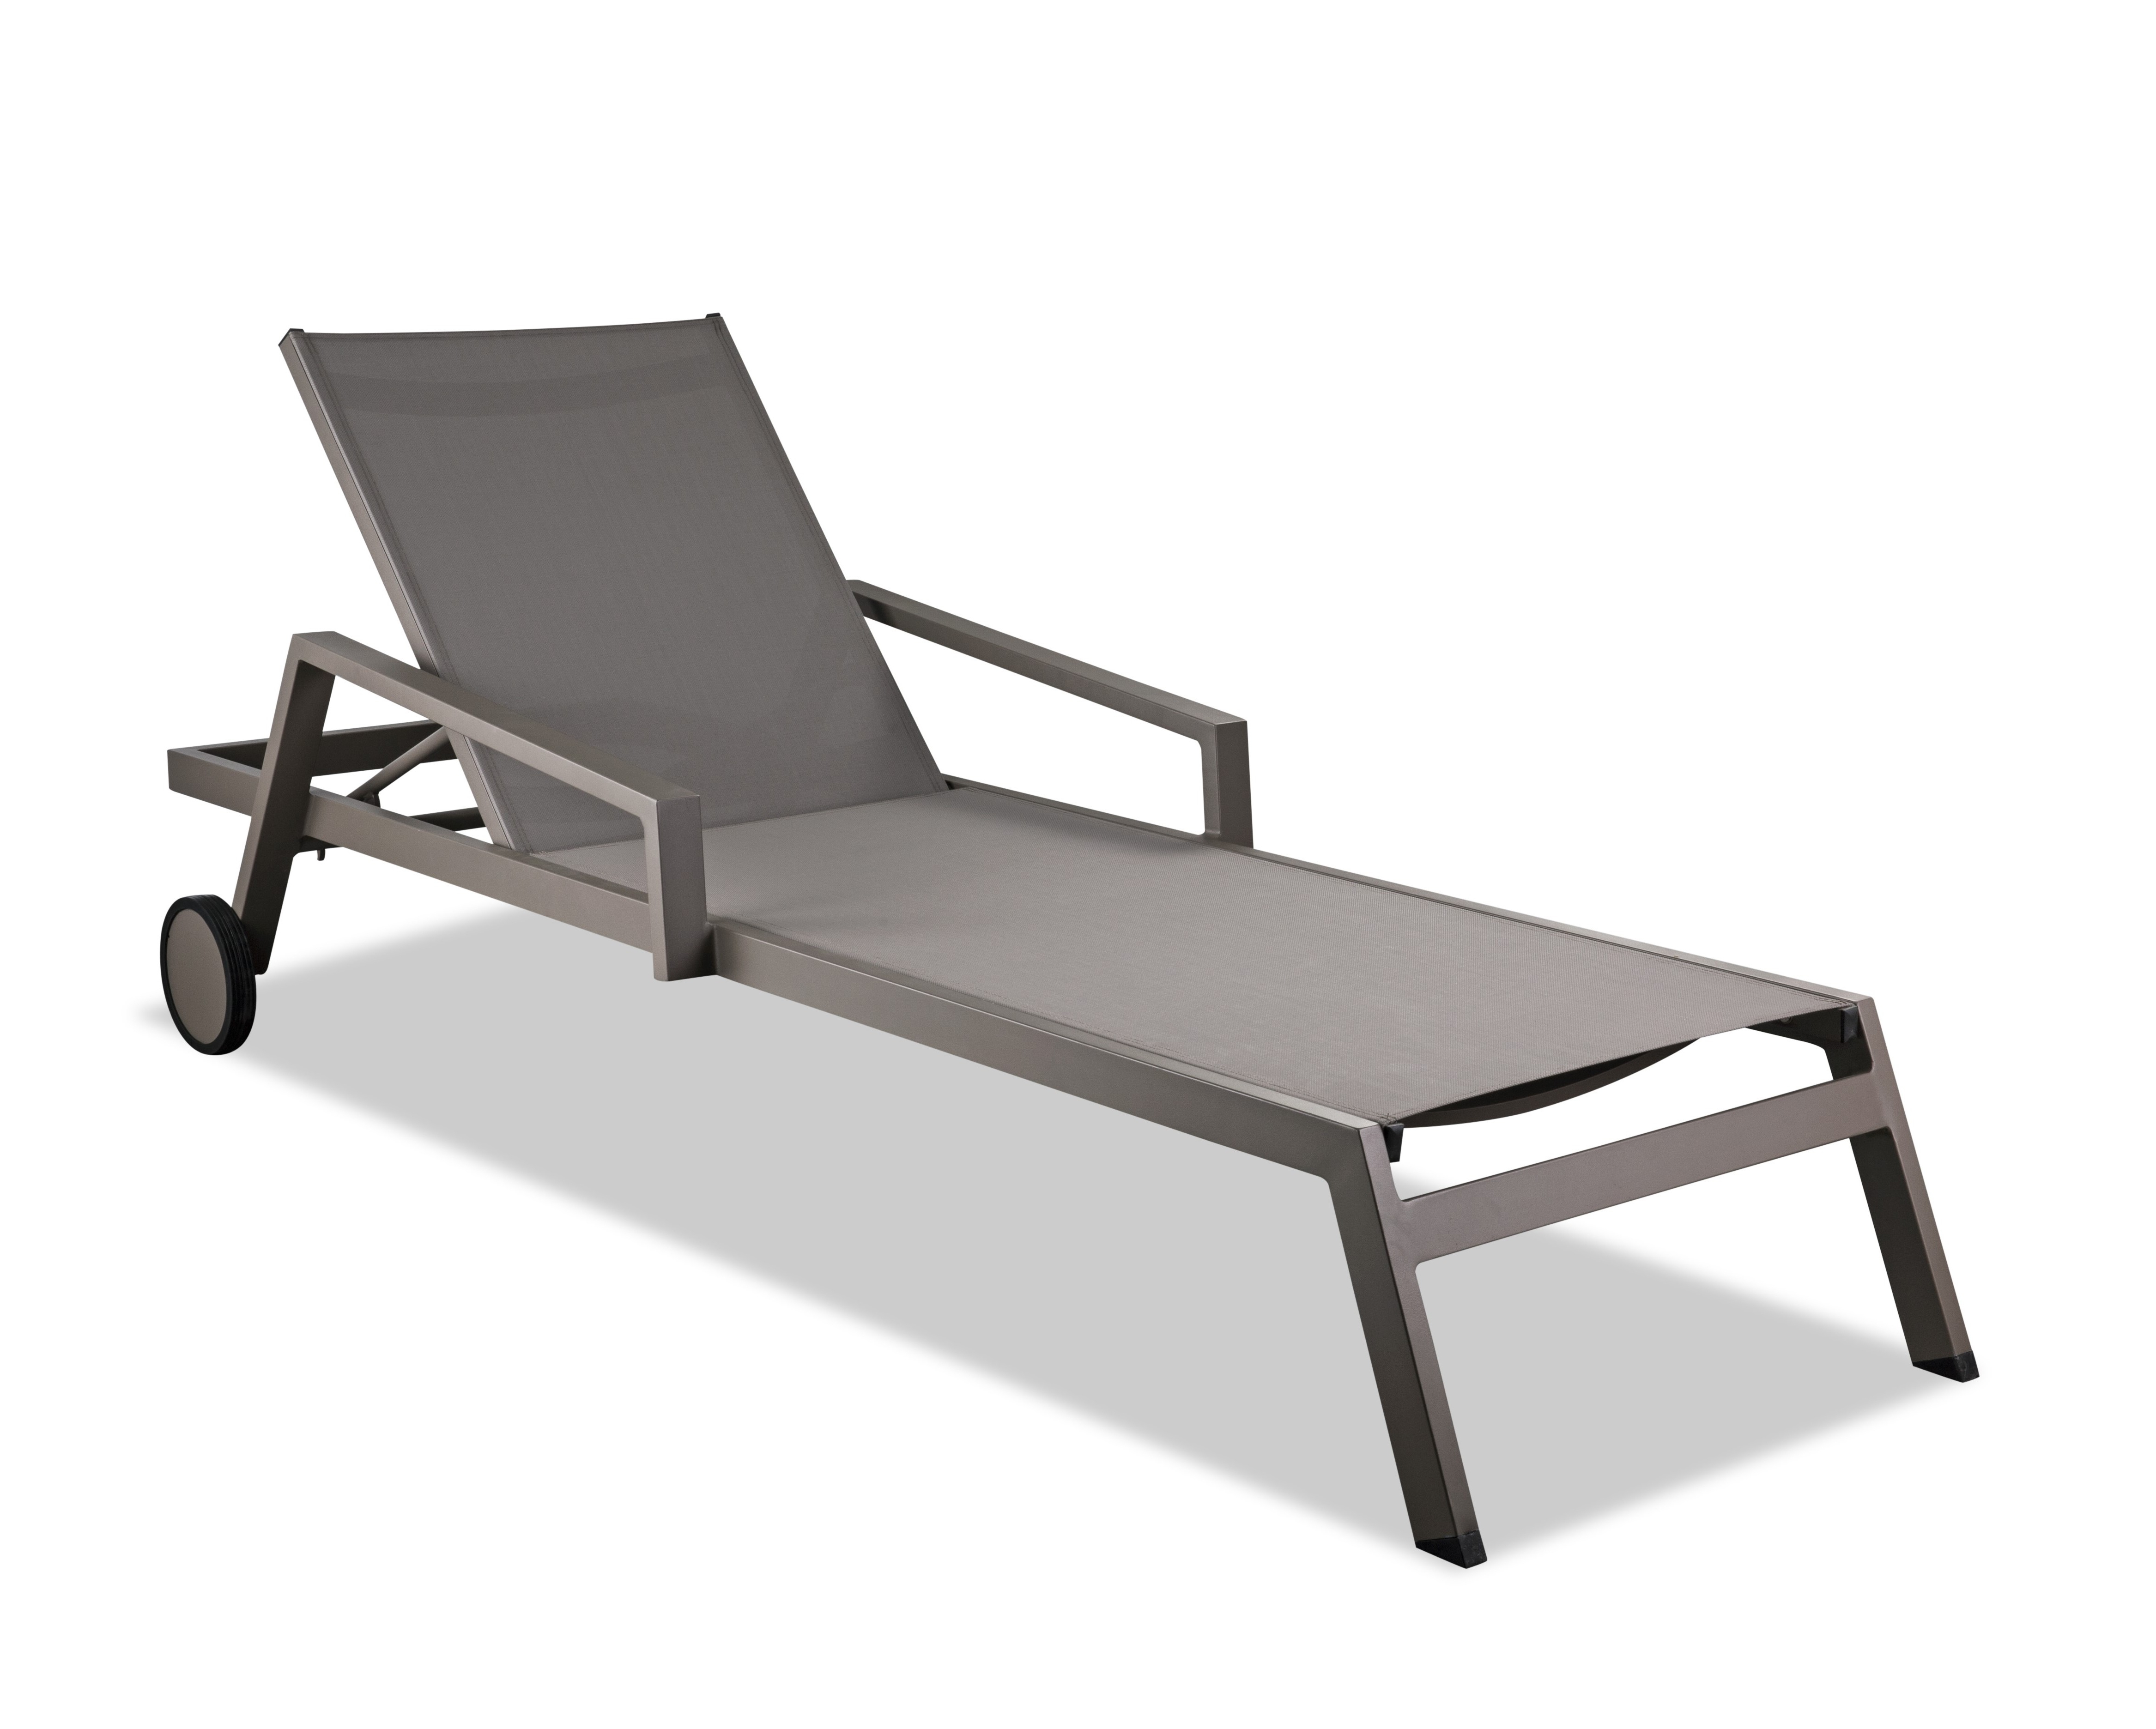 Metropolitandecor Throughout Favorite Outdoor Cart Wheel Adjustable Chaise Lounge Chairs (View 9 of 25)